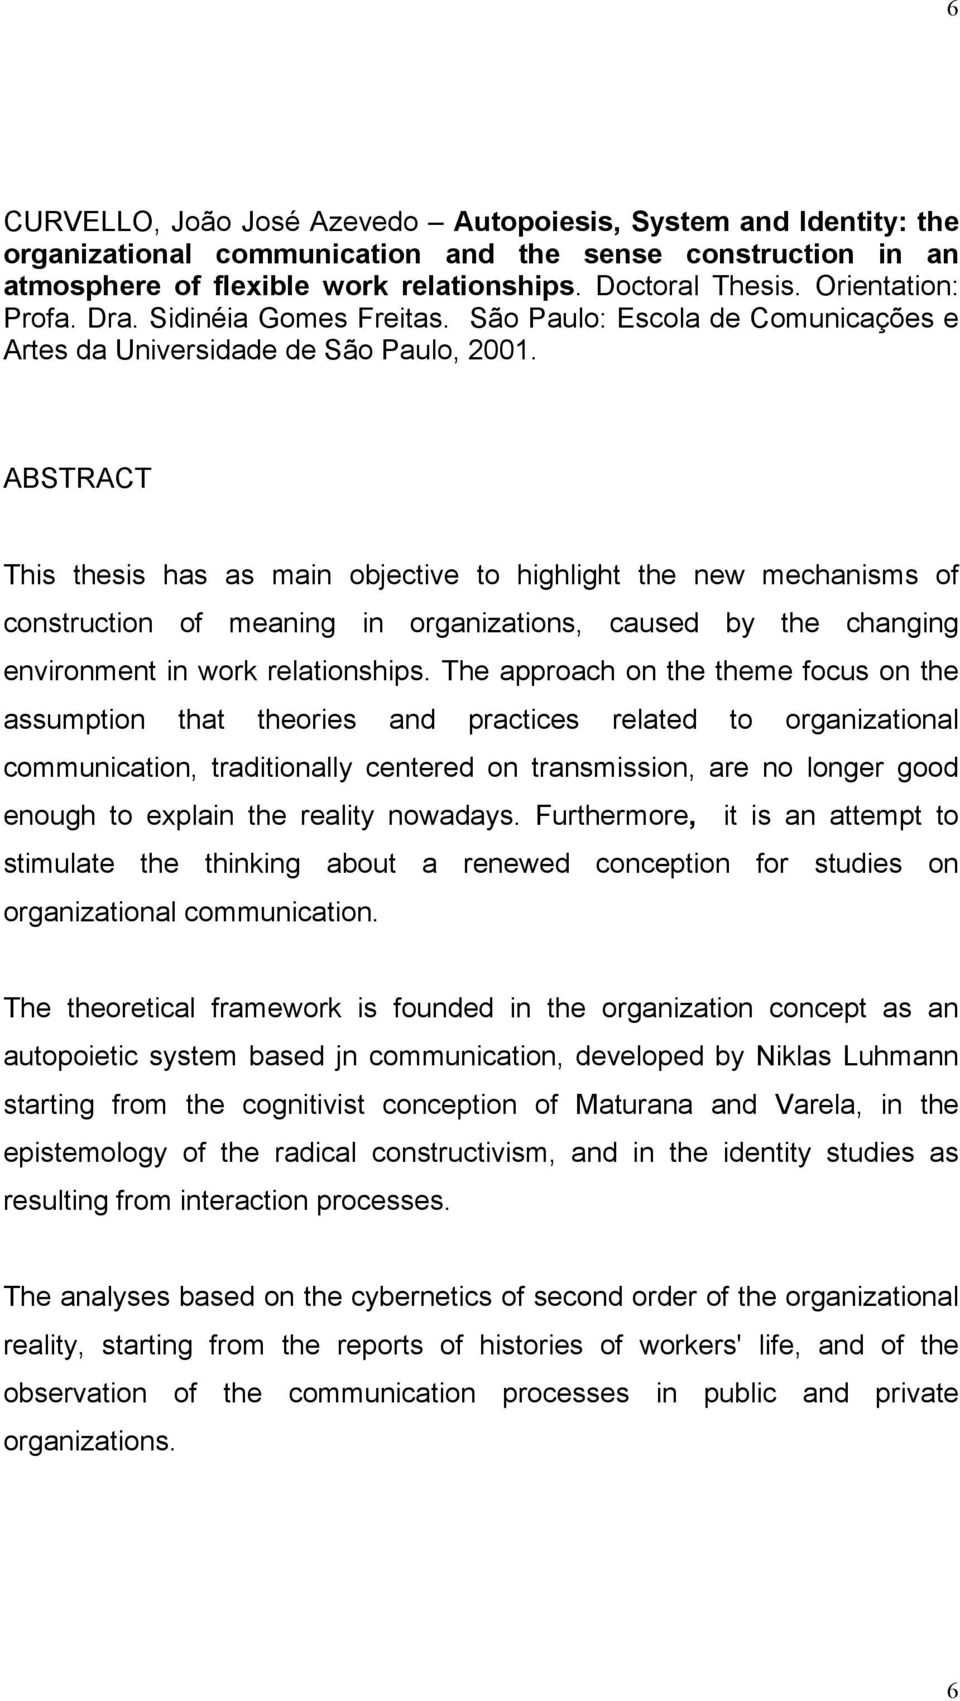 ABSTRACT This thesis has as main objective to highlight the new mechanisms of construction of meaning in organizations, caused by the changing environment in work relationships.